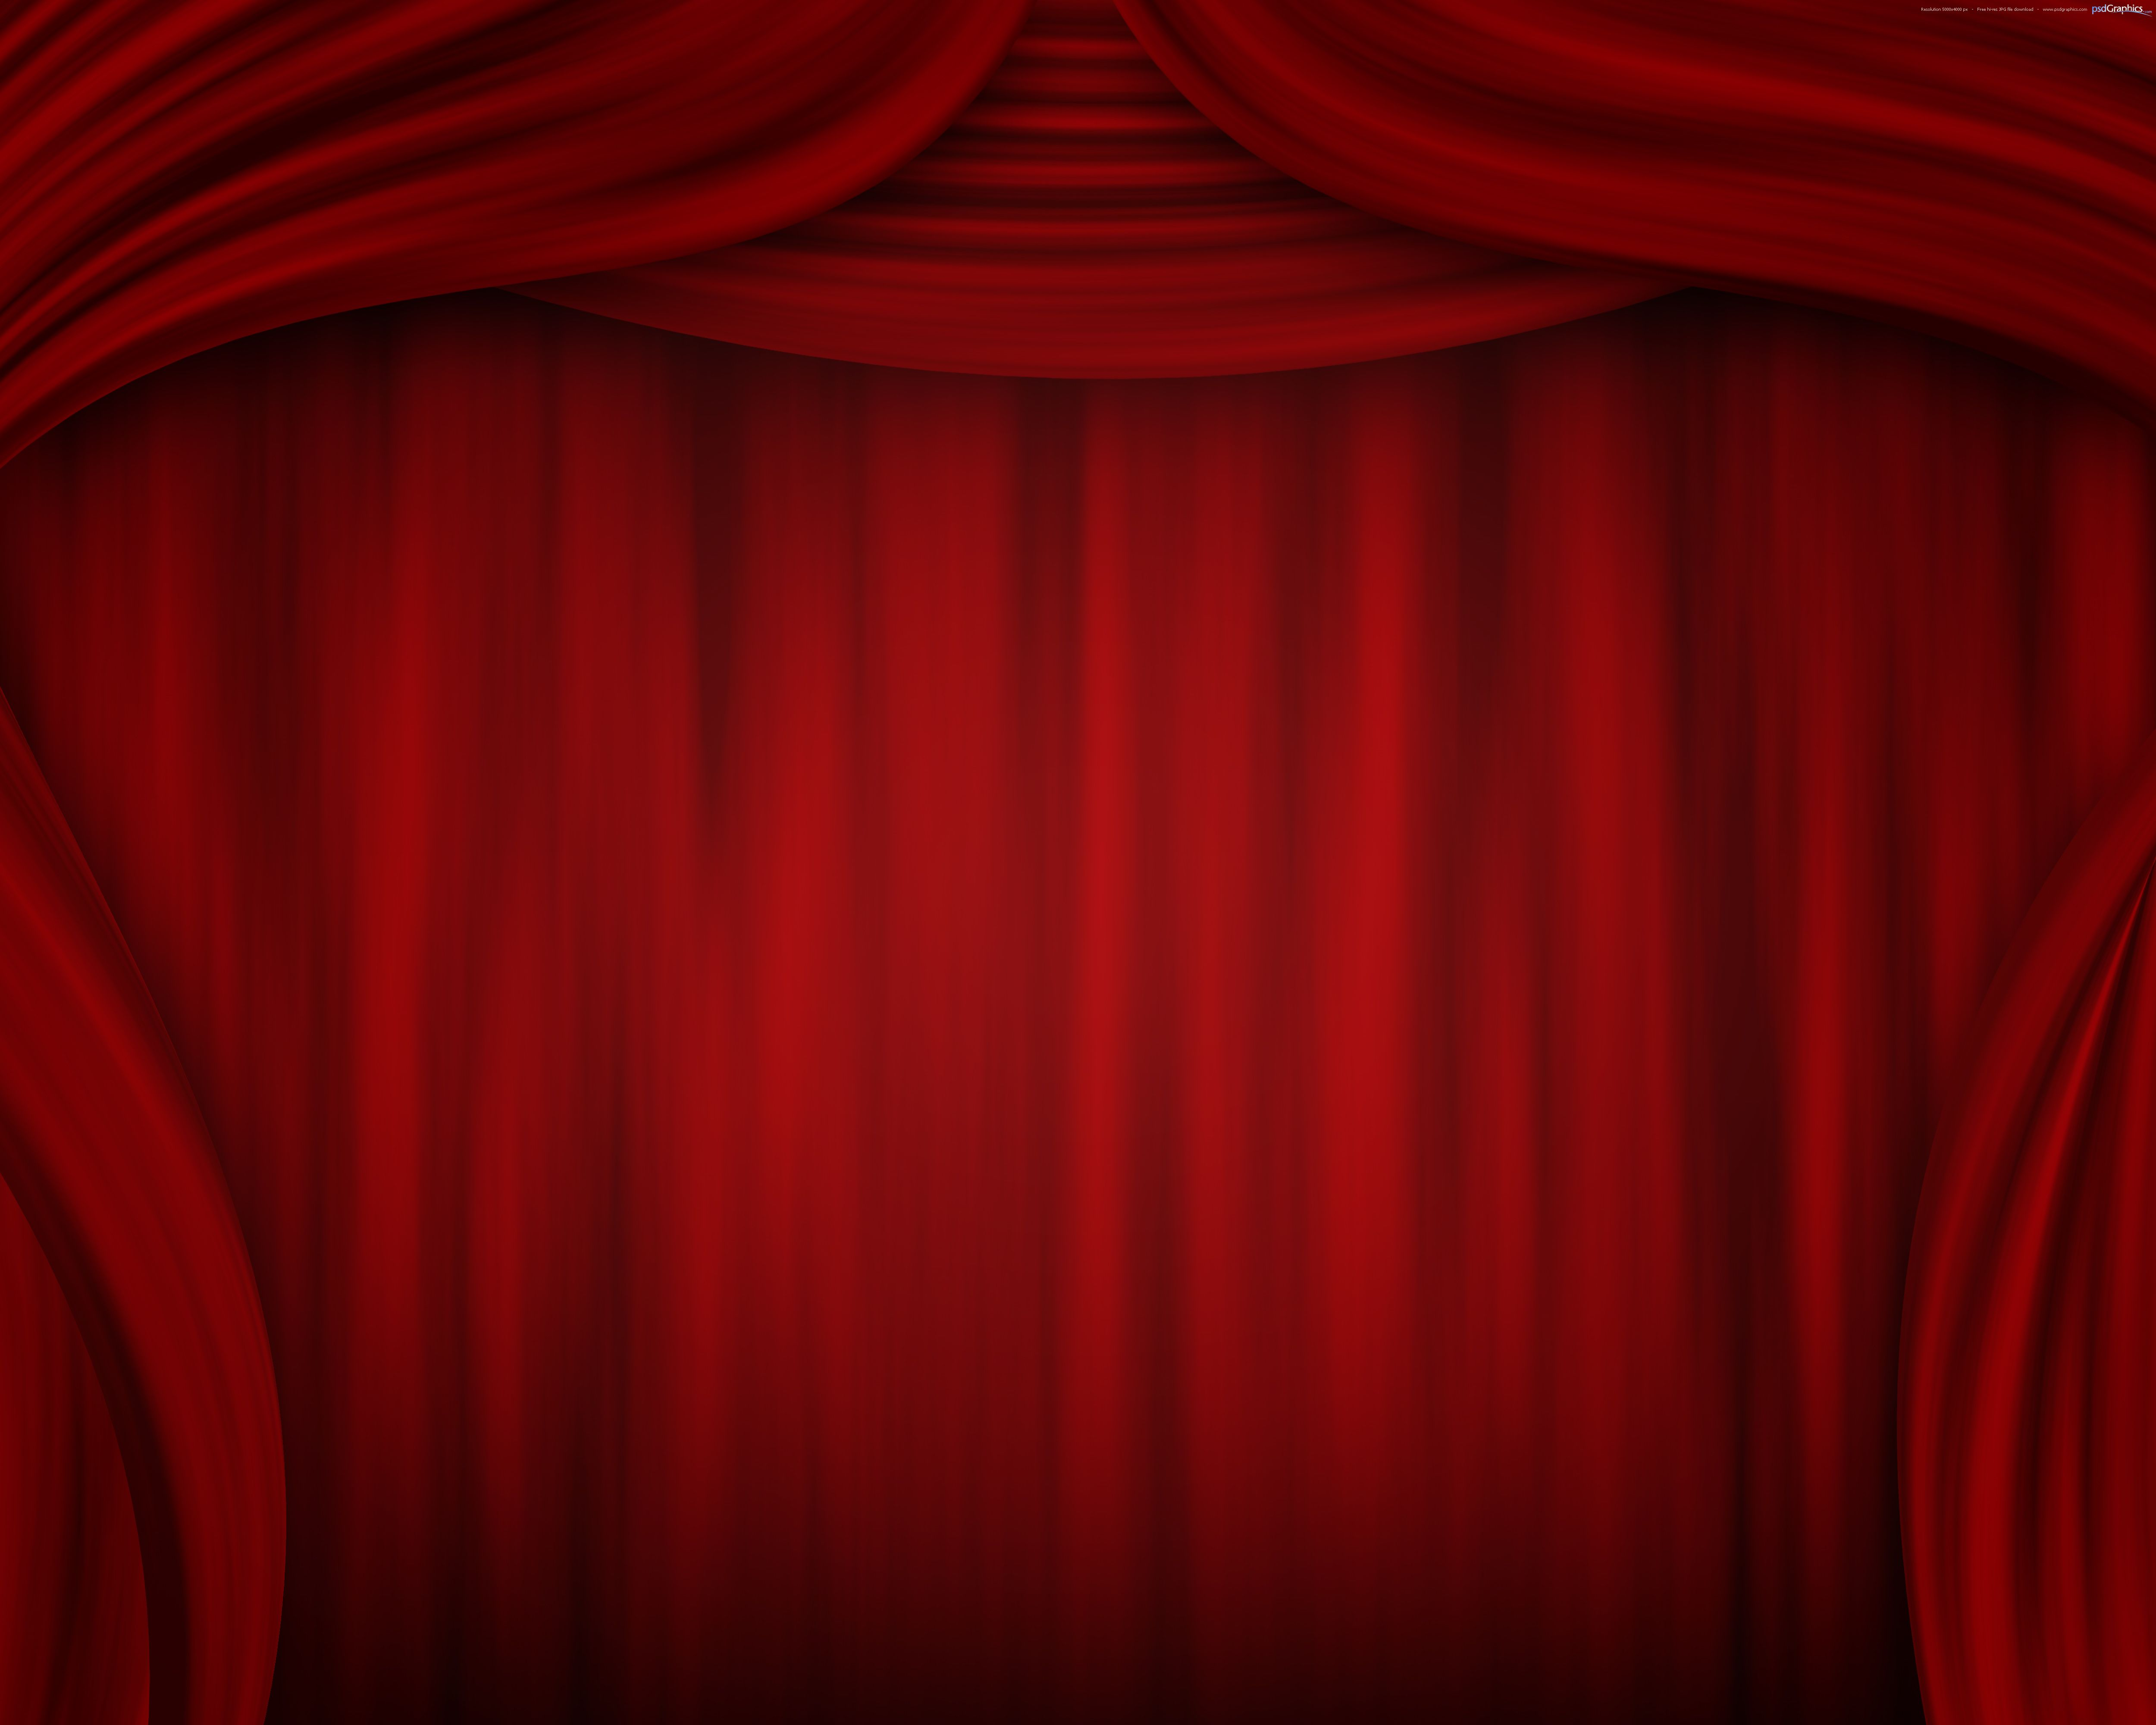 Our family has been committed to manufacturing the highest quality theatre curtains and theatrical drapery